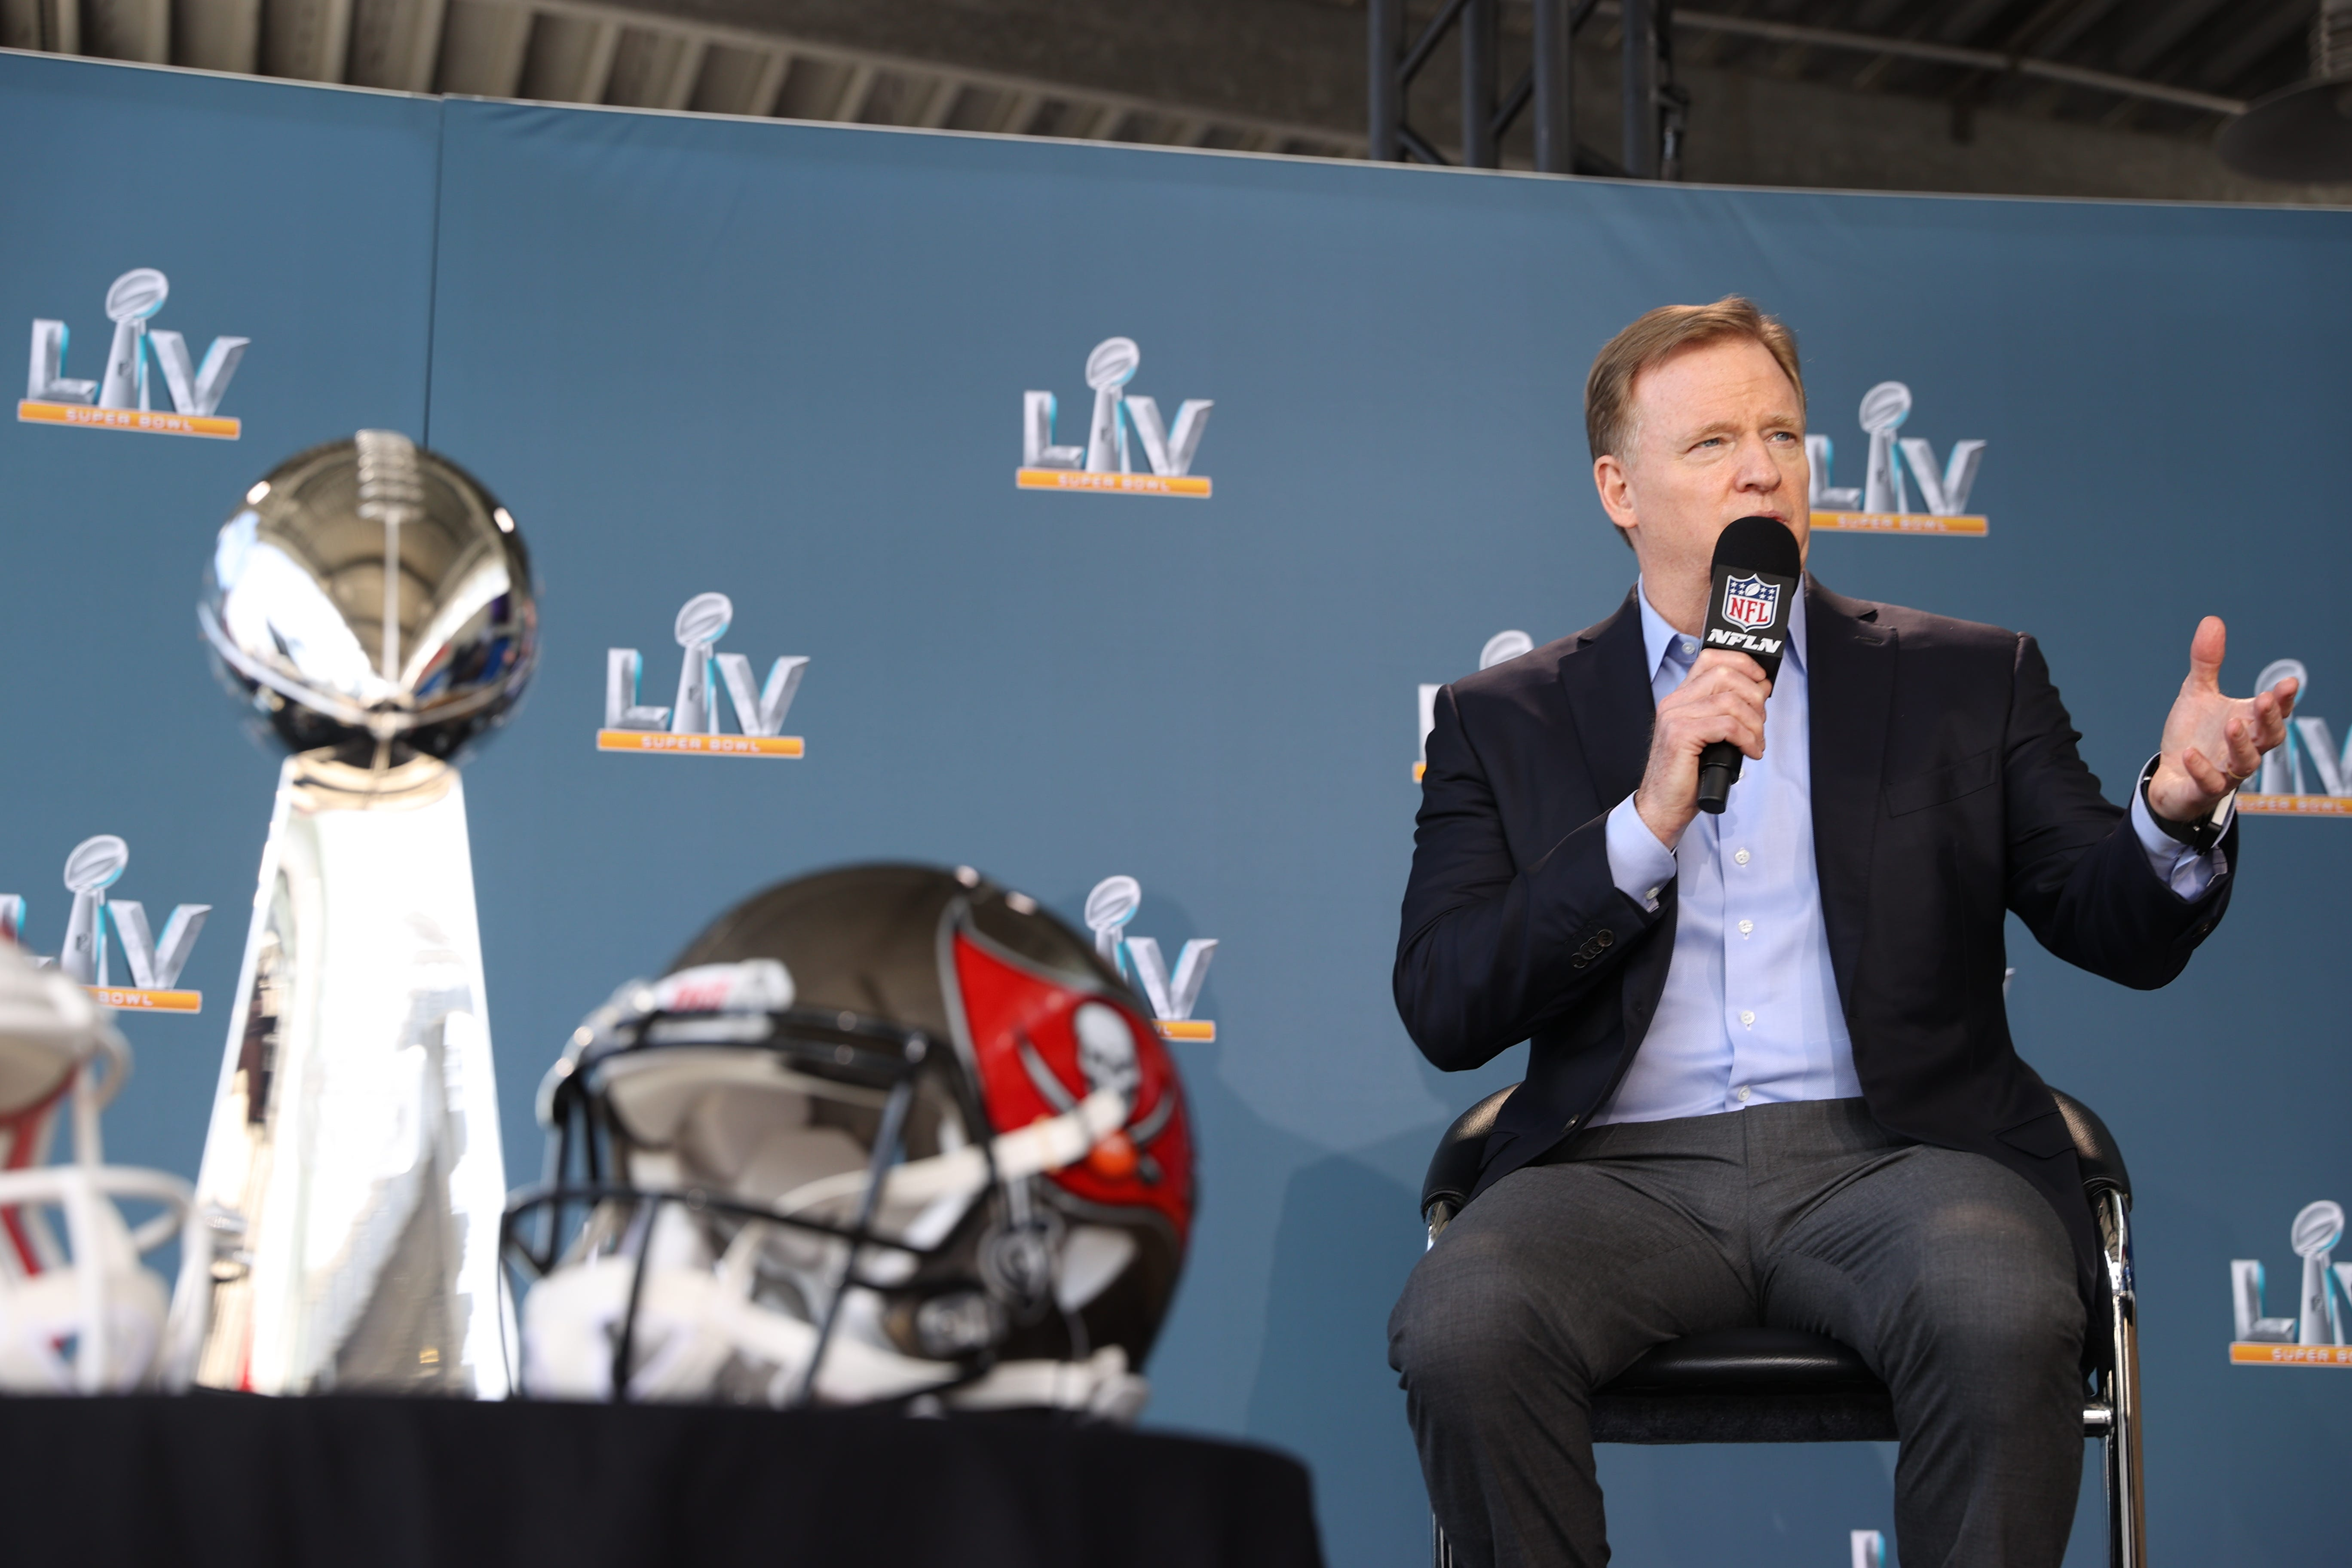 NFL s Roger Goodell responds to Georgia voter law in internal memo, says league continues work to strengthen voters  rights